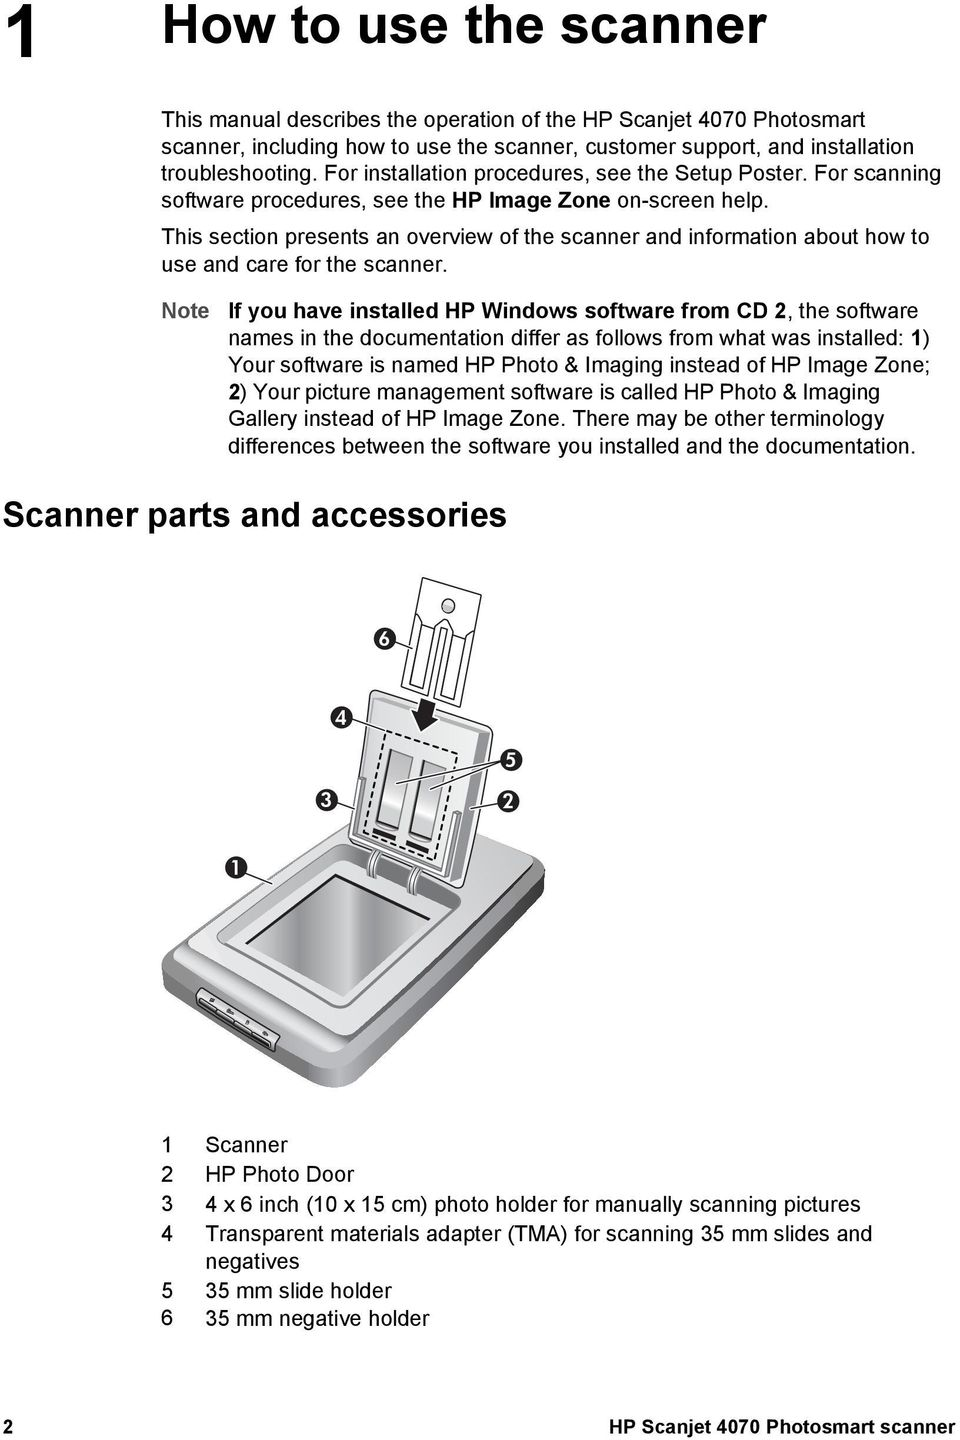 HP Scanjet 4070 Photosmart scanner - PDF